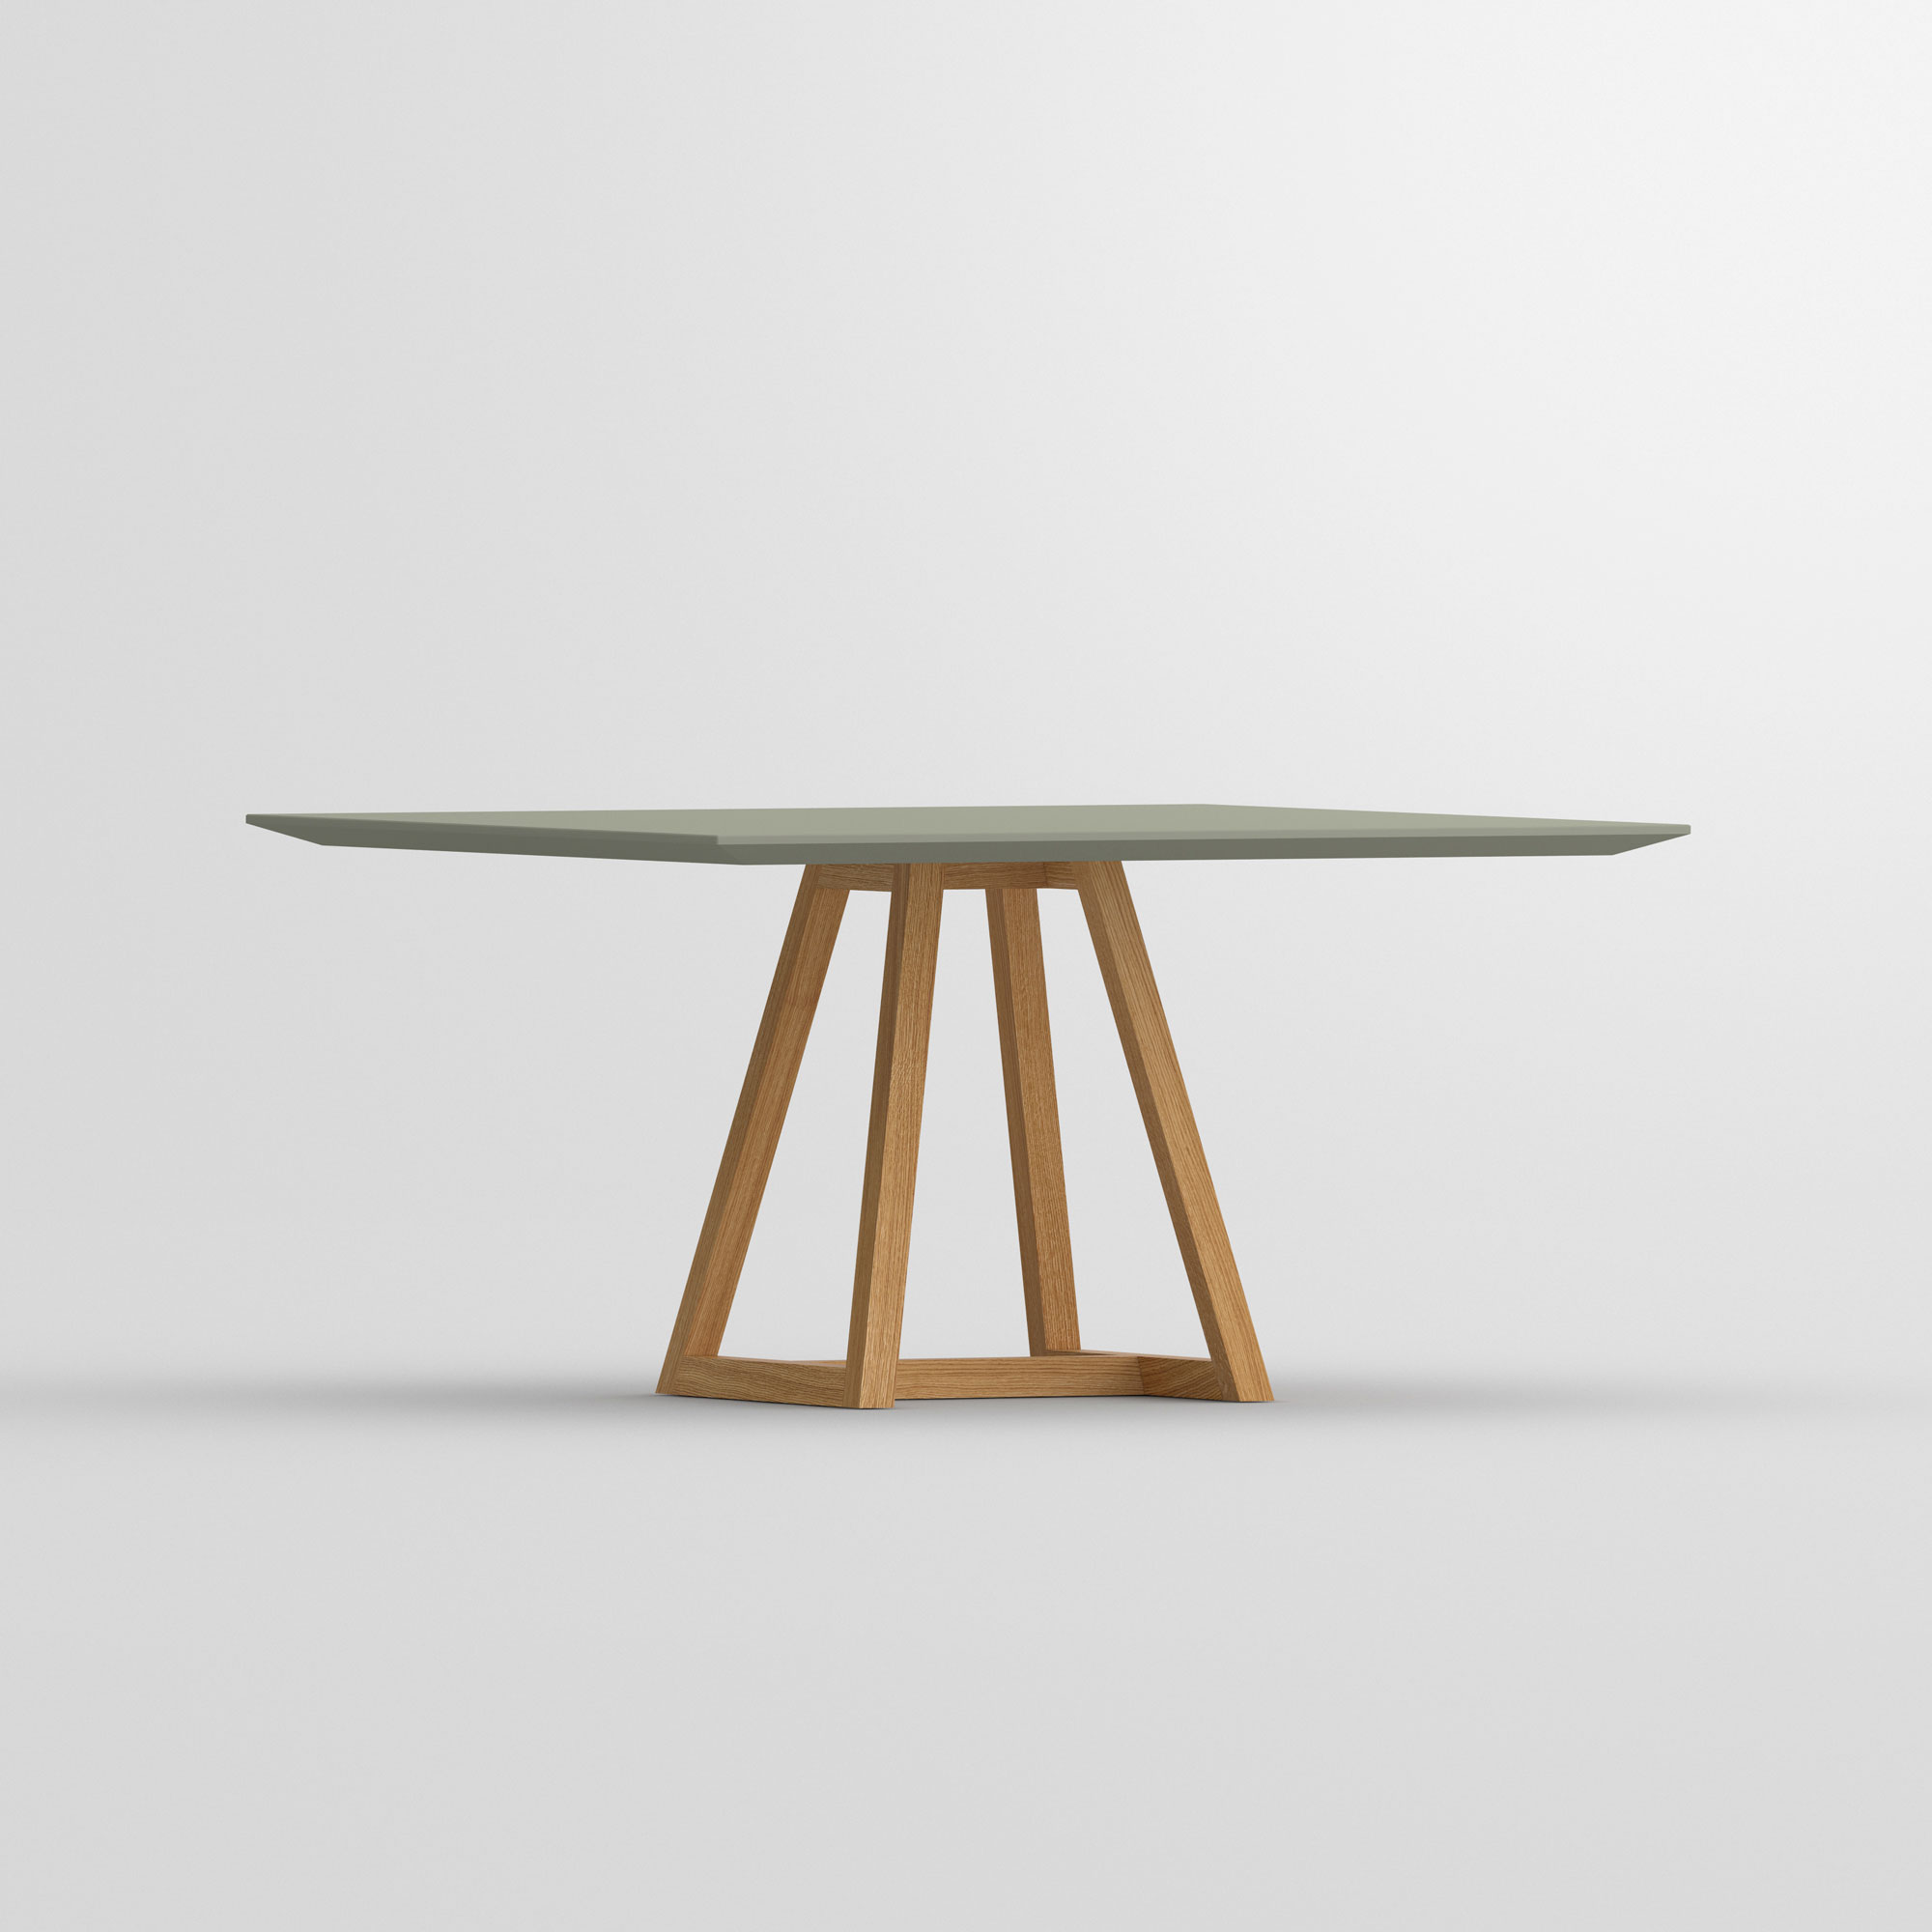 Linoleum table MARGO SQUARE LINO cam2 custom made in solid wood by vitamin design